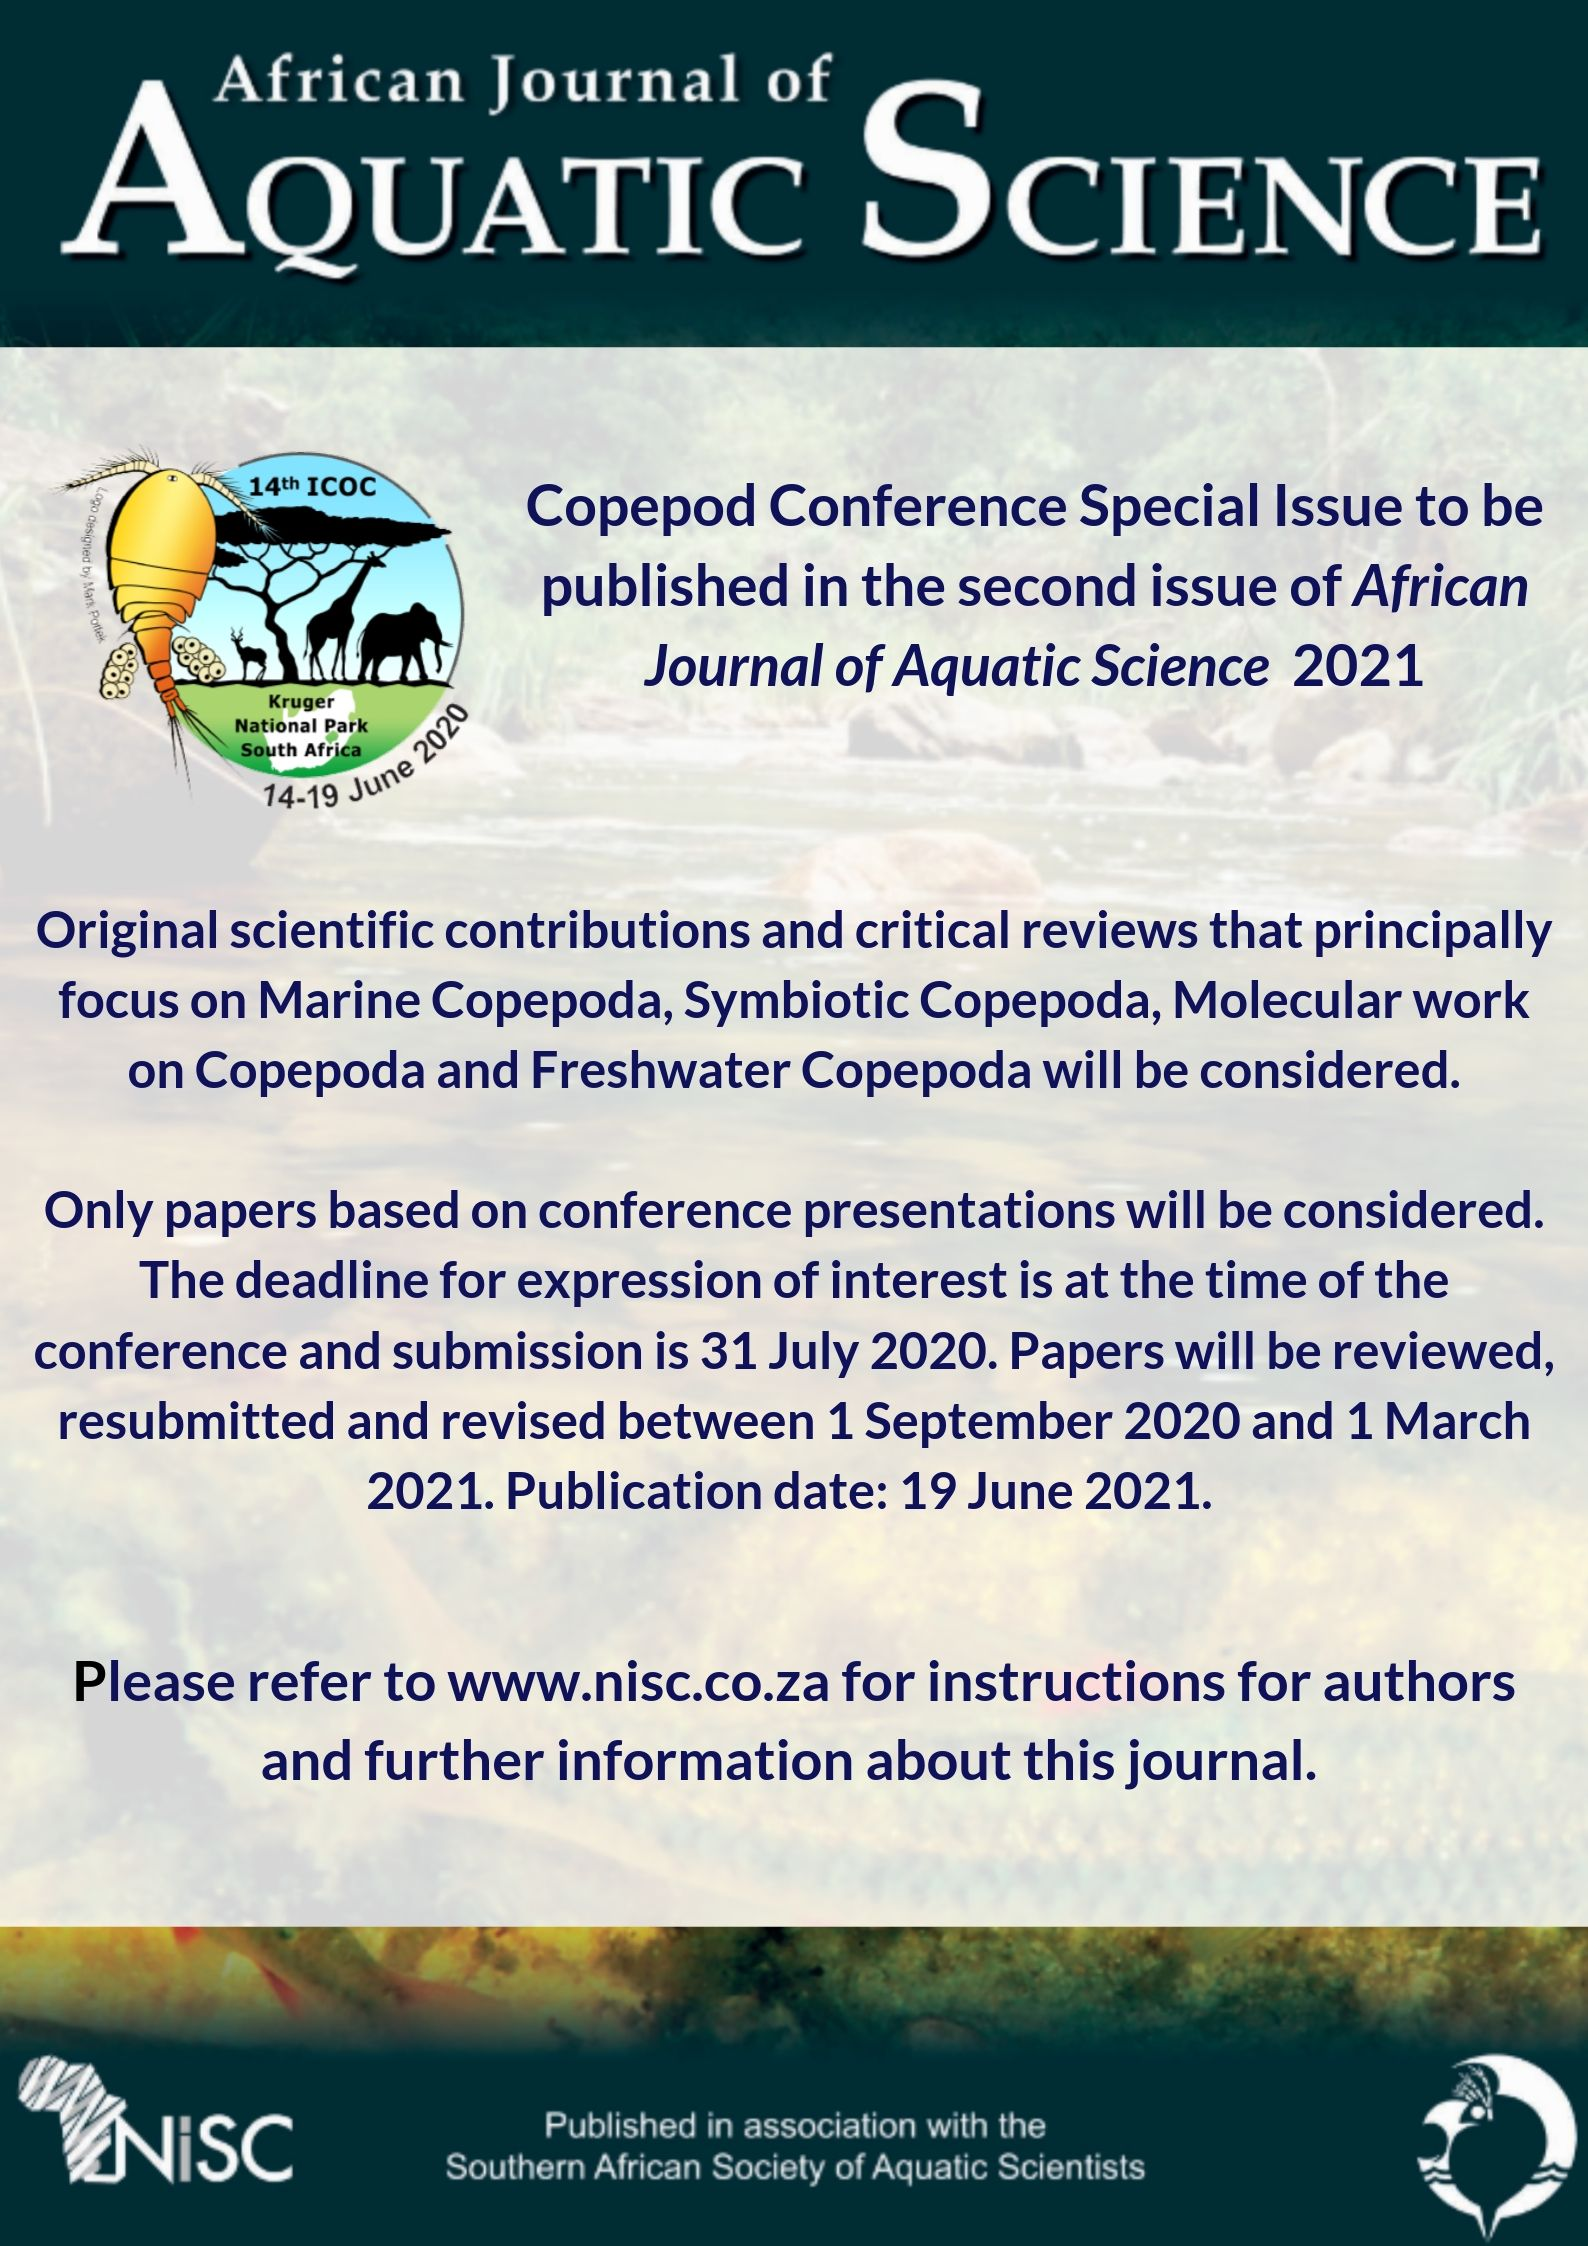 African Journal of Aquatic Science